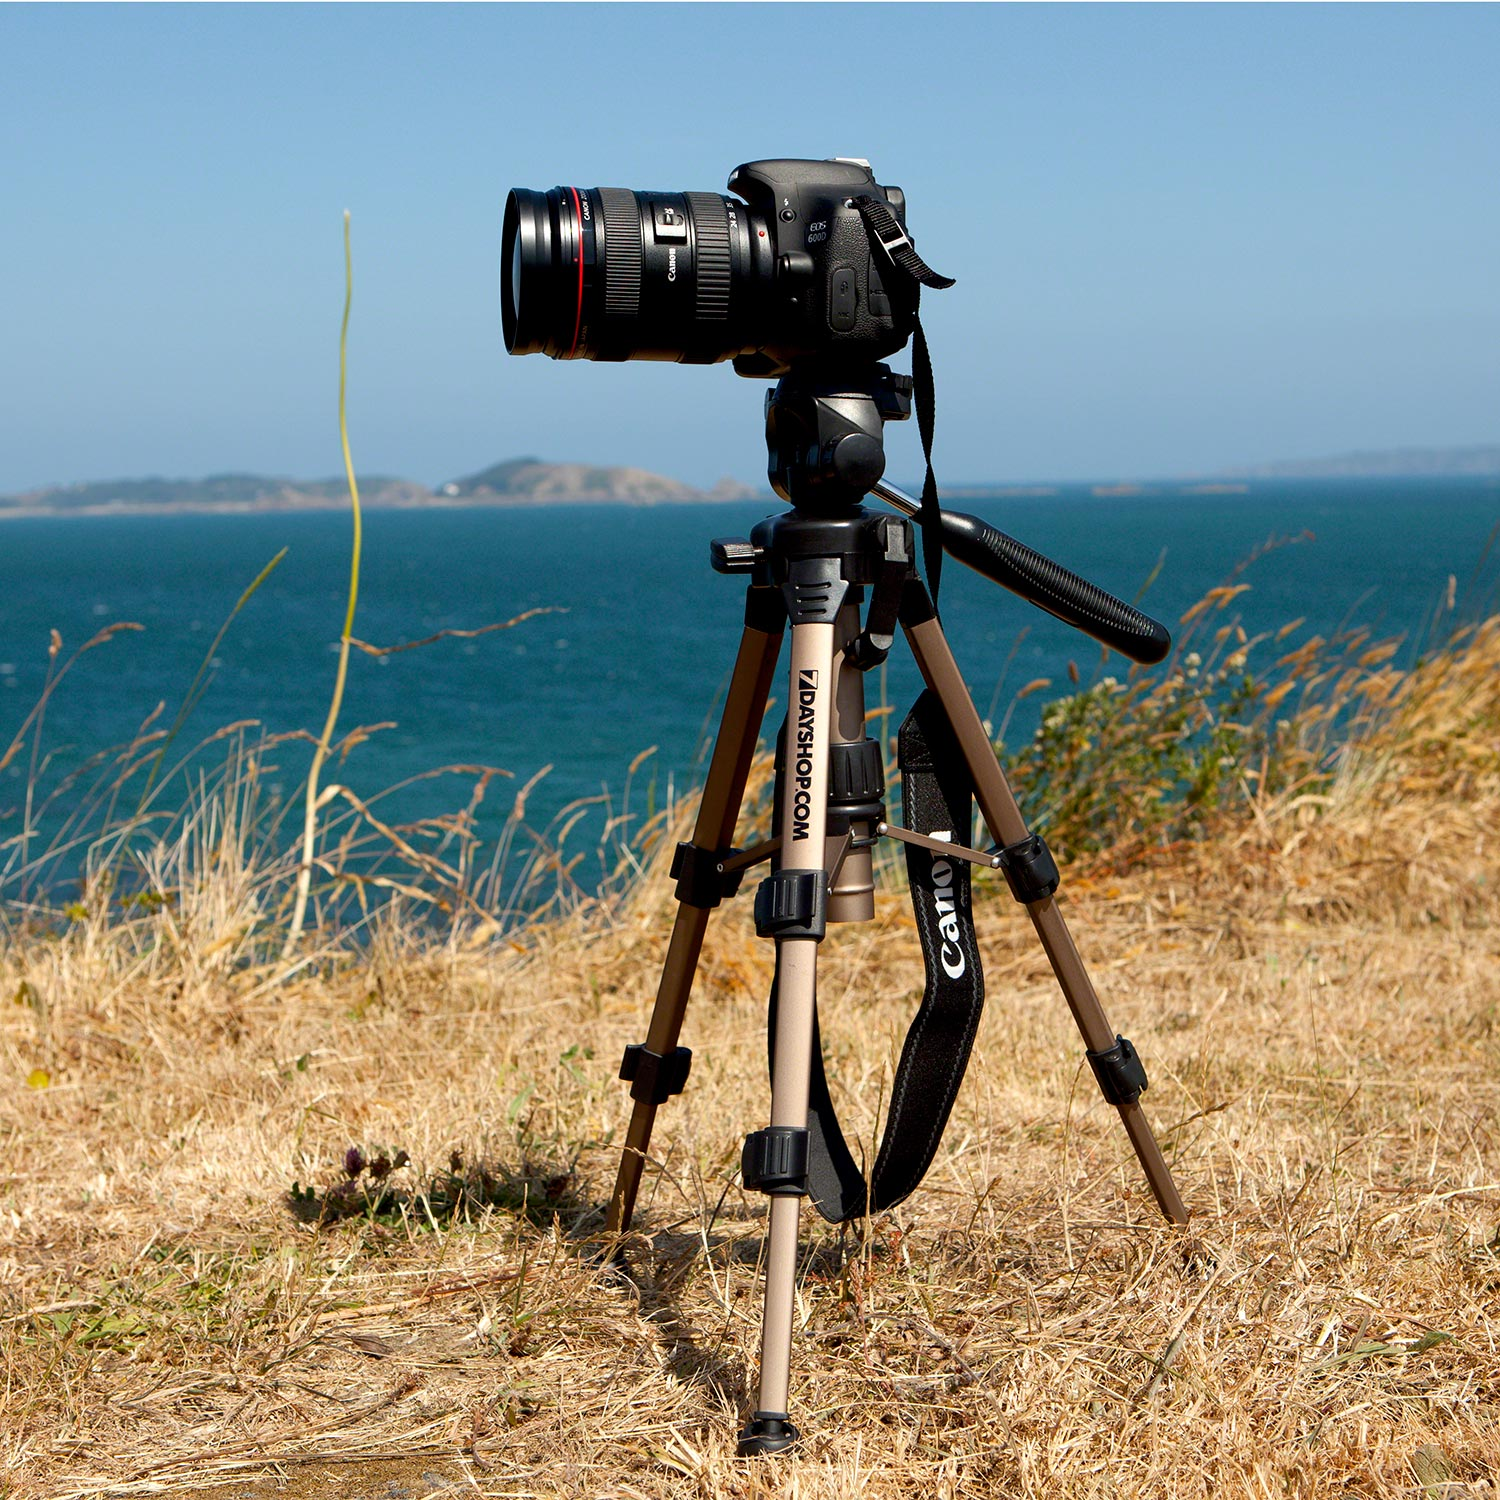 7dayshop Tripods  Fully Featured Baby Tripod with FREE Case